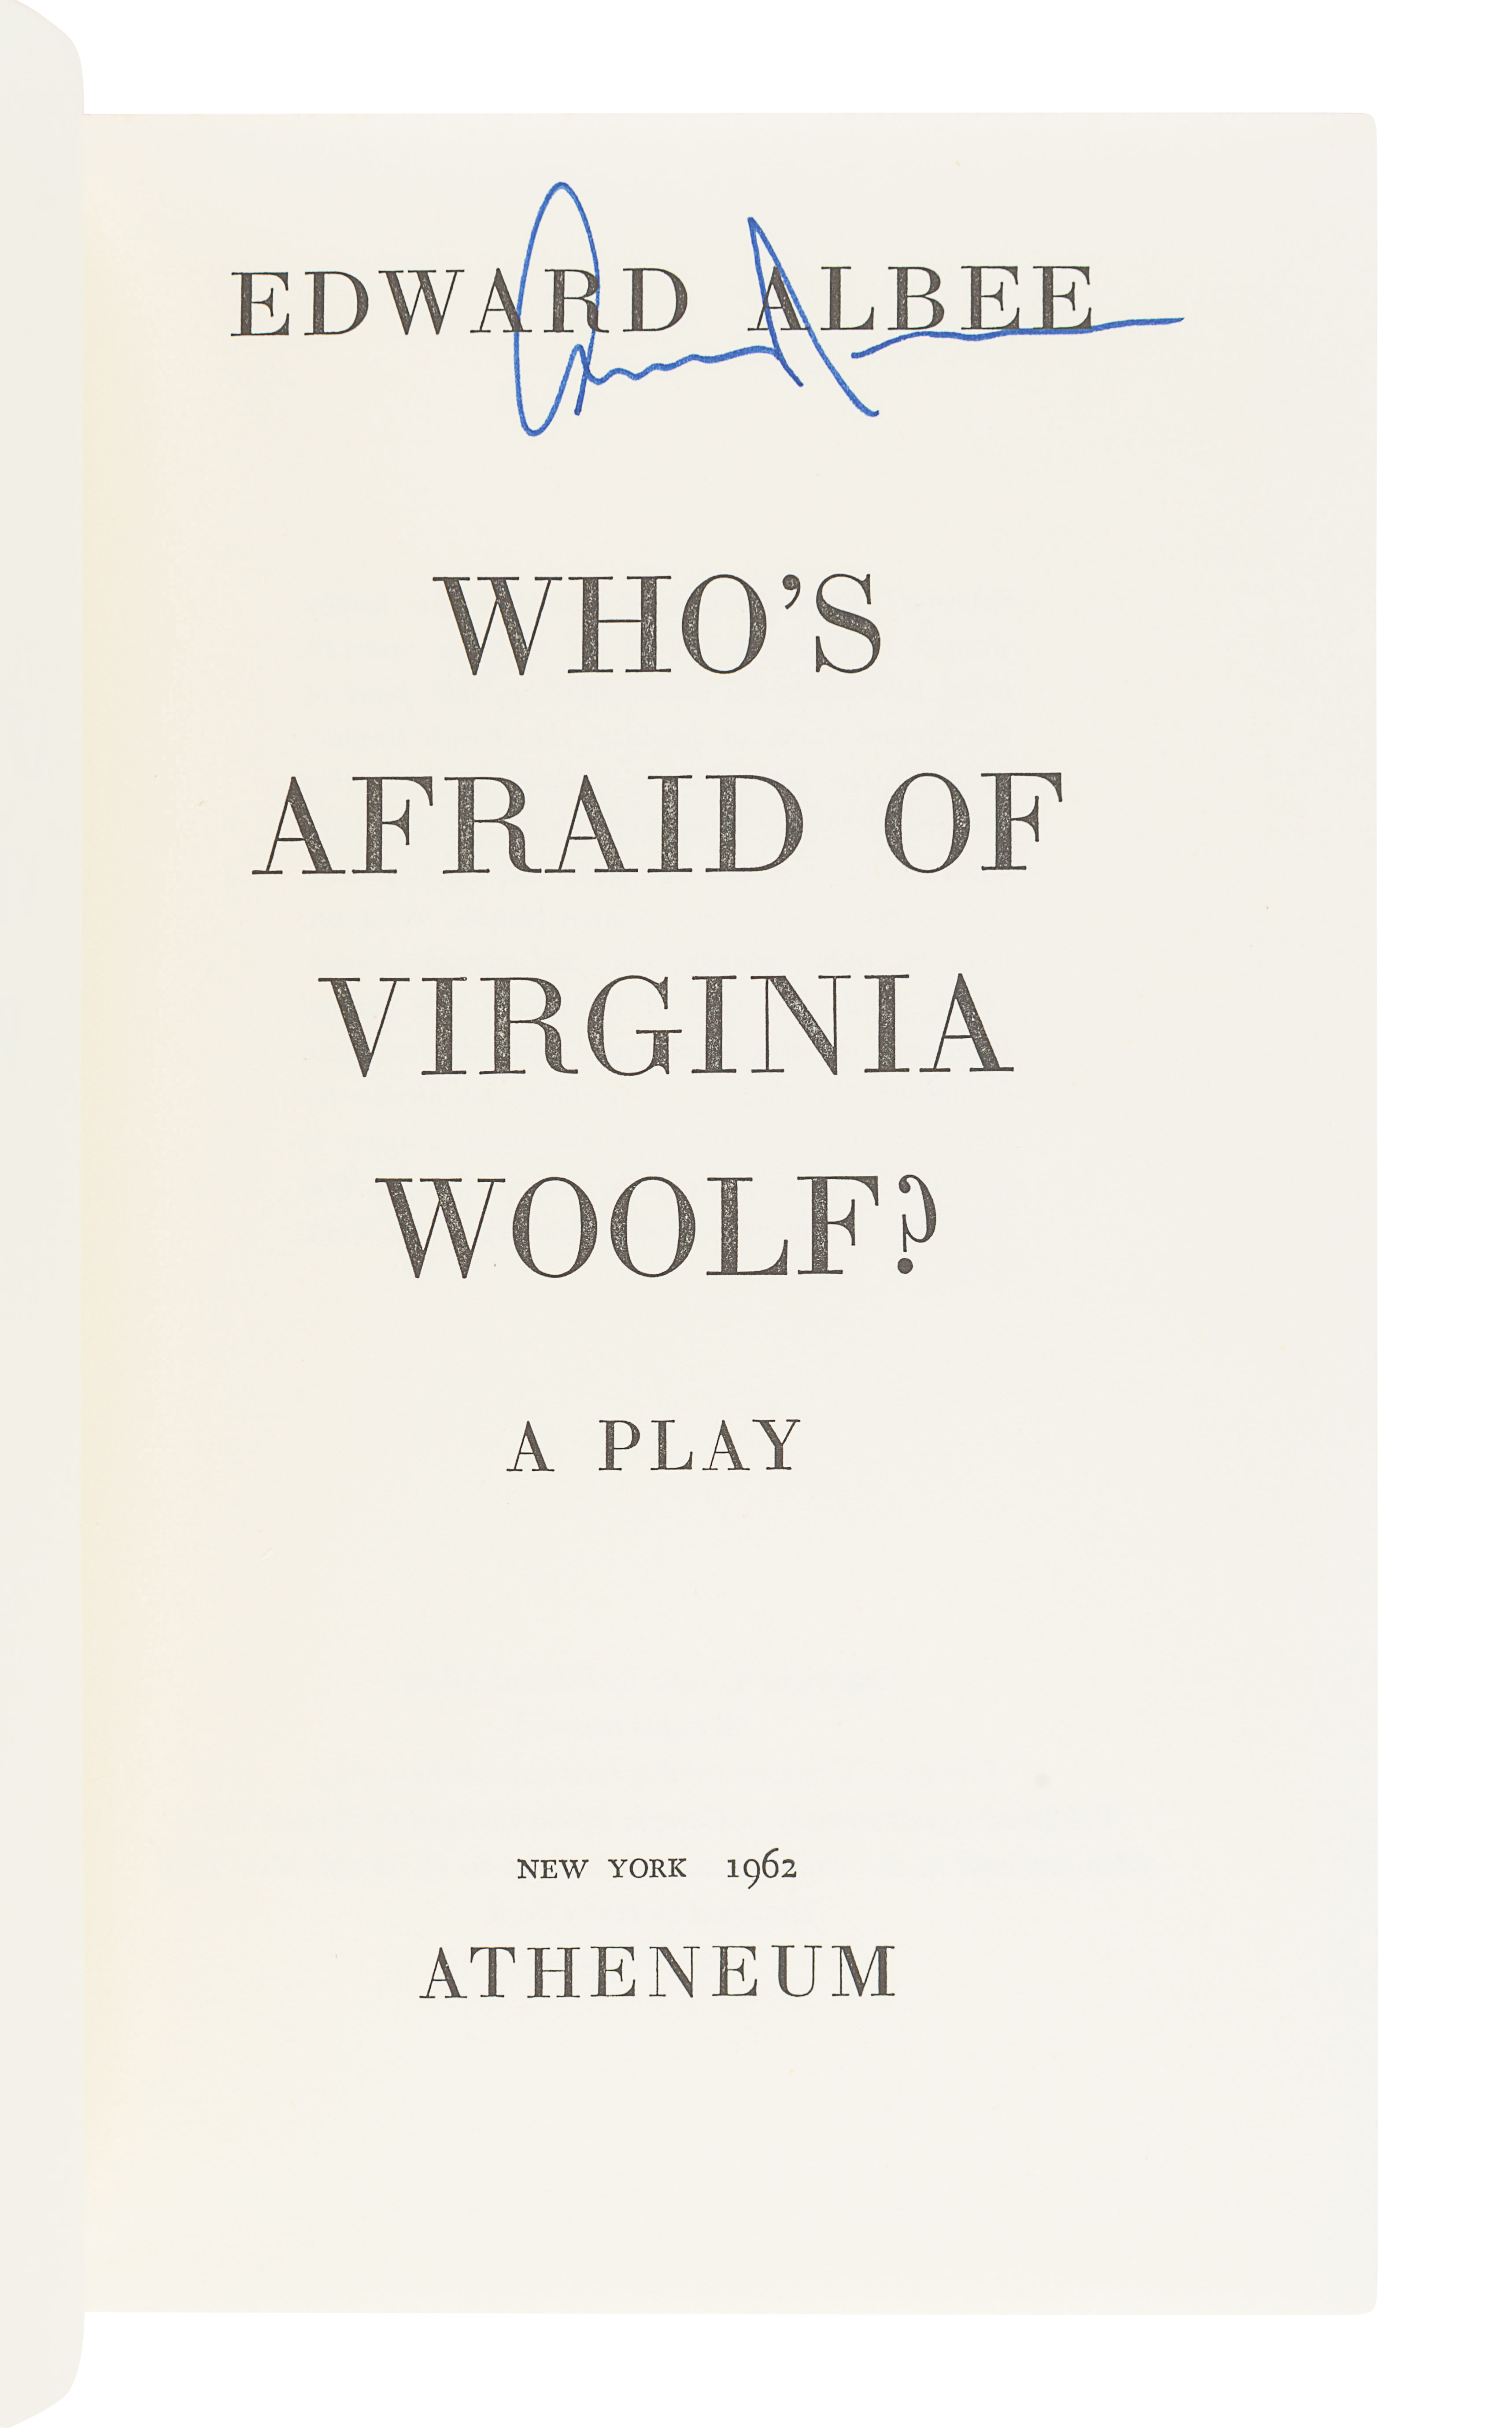 ALBEE, Edward (1928-2016). Who's Afraid of Virginia Woolf? New York: Atheneum, 1962.